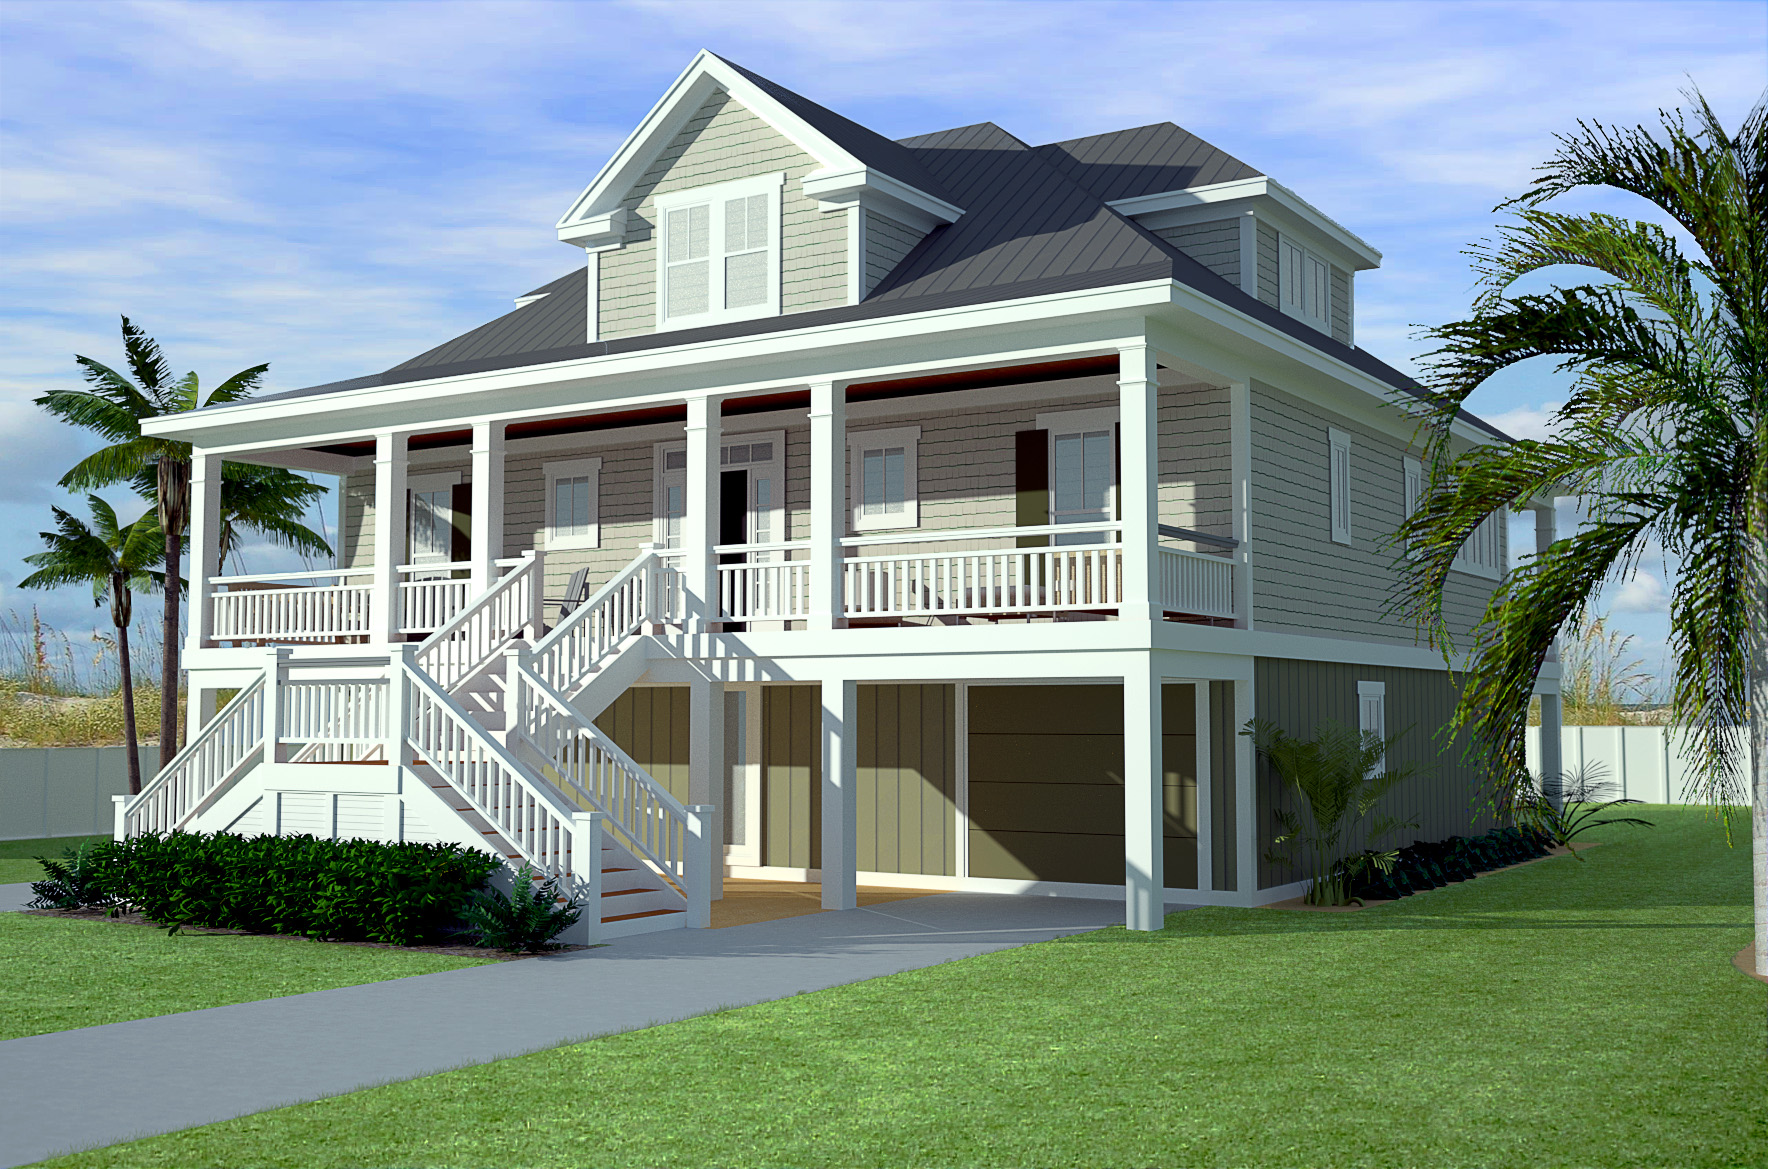 Stylish low country home plan 15062nc 1st floor master for Low country home plans